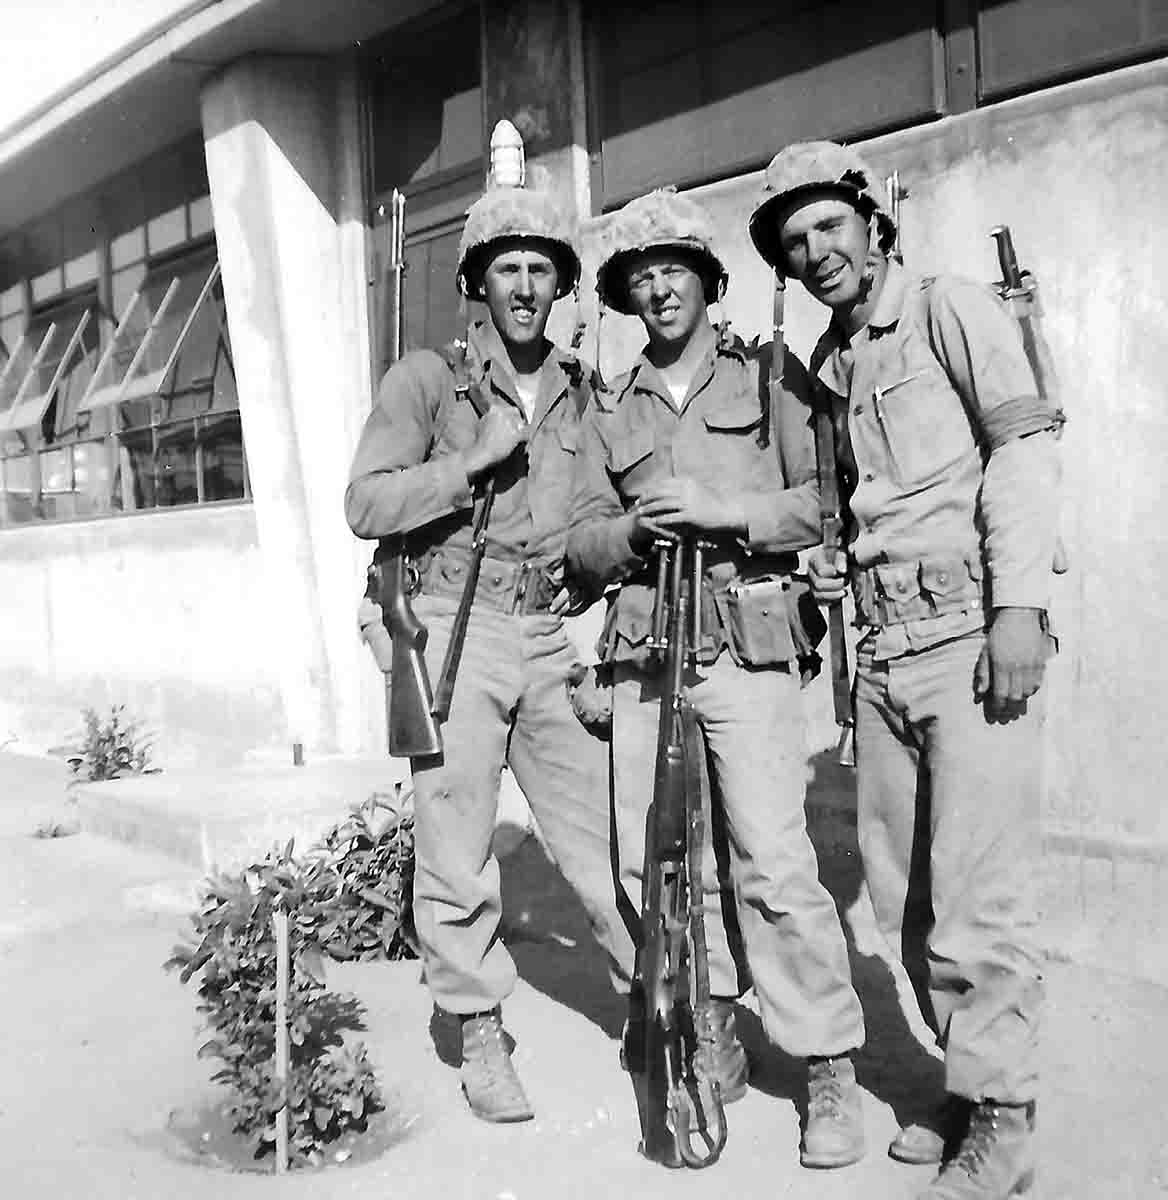 Three U.S. Marines ready to head to Korea in 1950, armed with M1 Garands and a Model 1918A2 BAR.